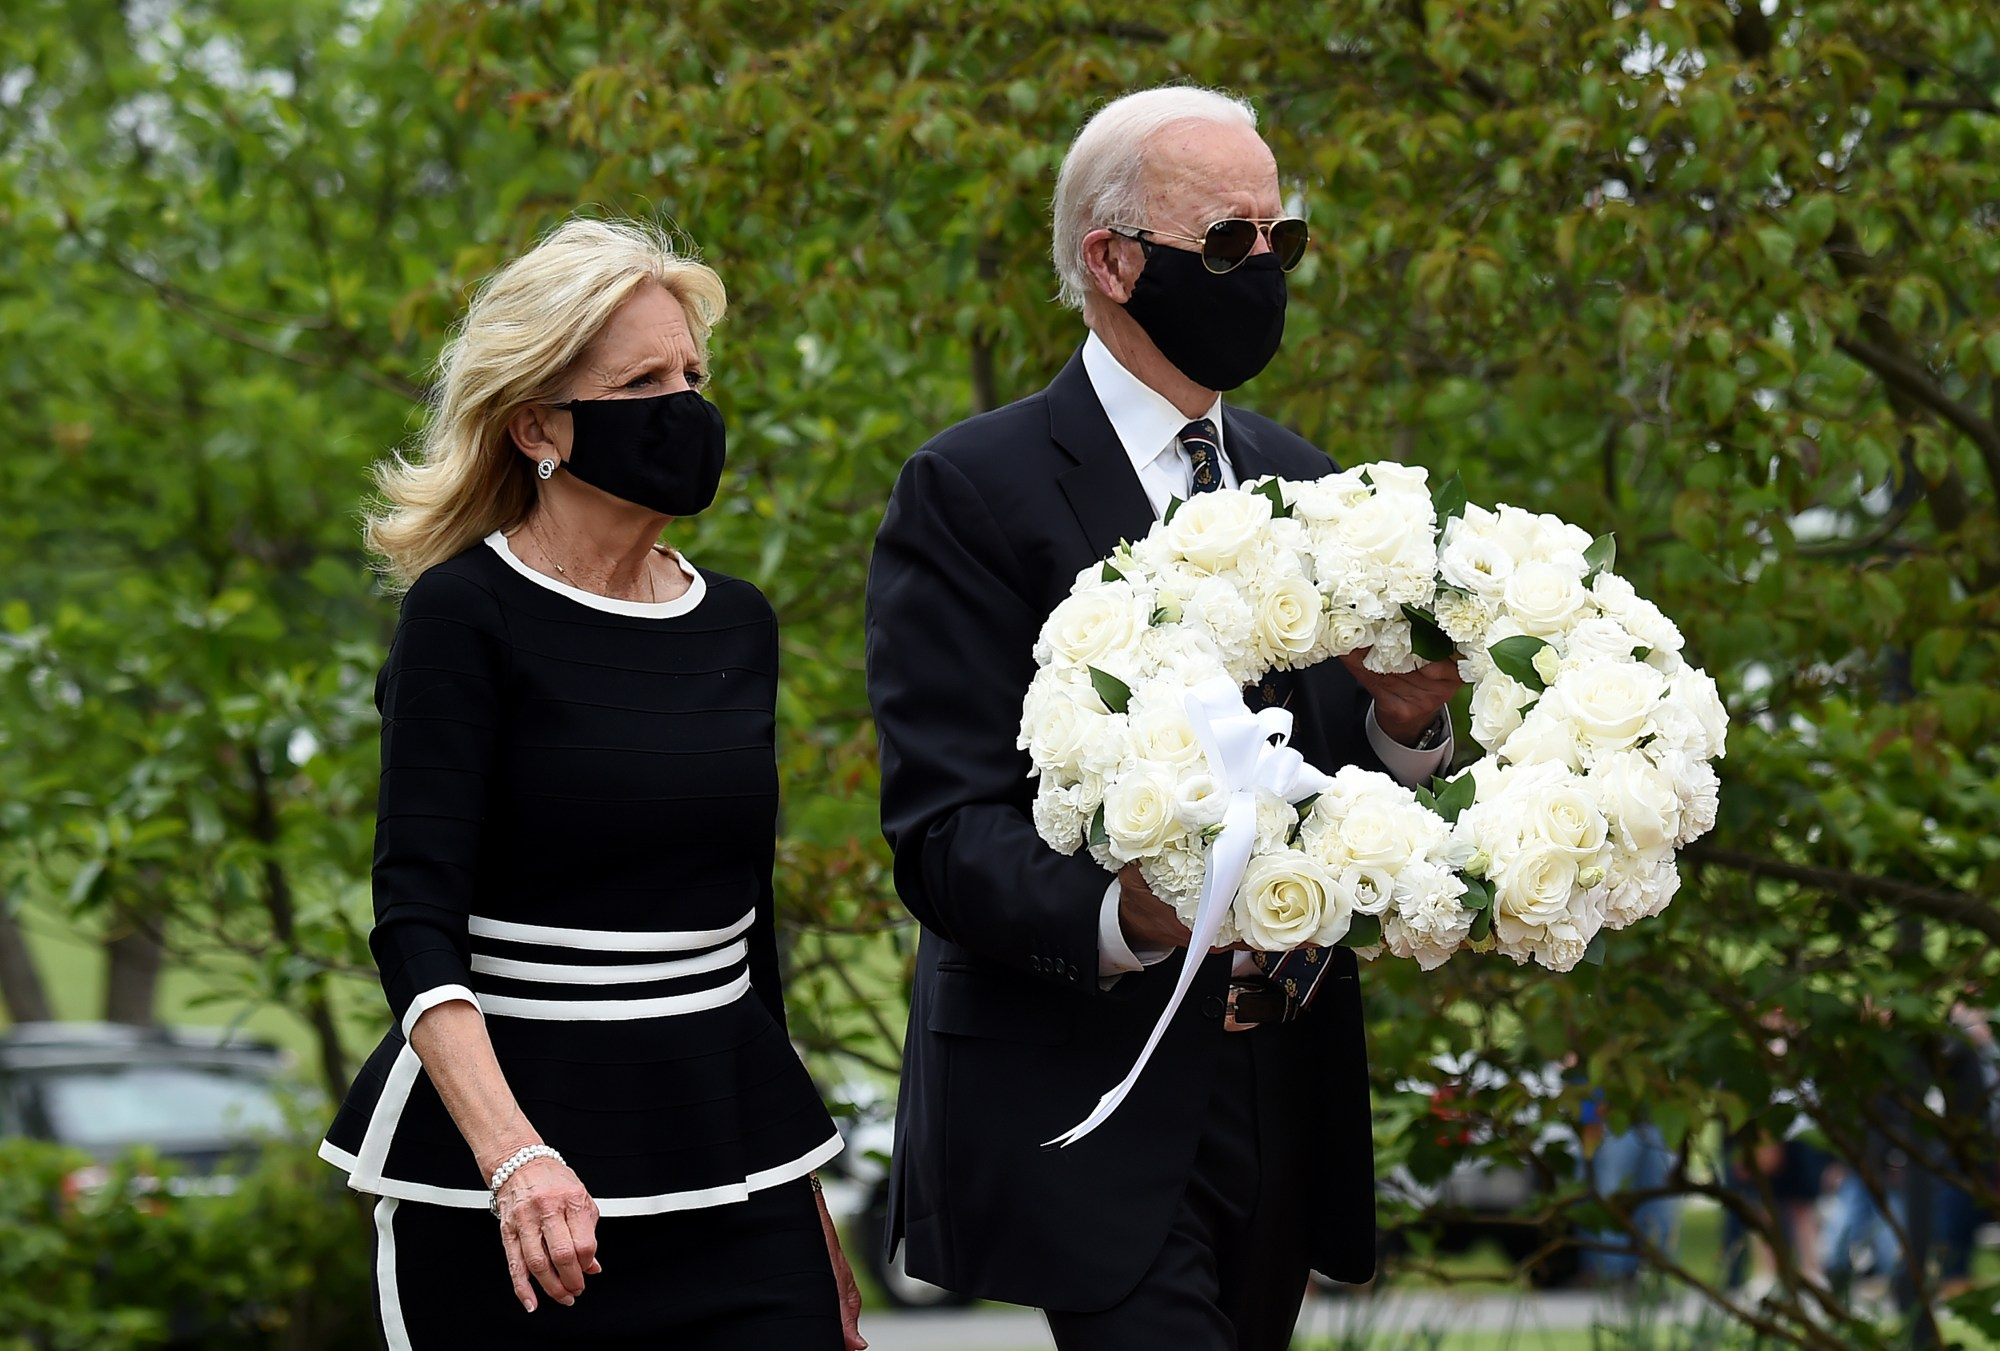 Joe and Jill Biden pay their respects to fallen service members on Memorial Day at Delaware Memorial Bridge Veteran's Memorial Park in Wilmington on May 25, 2020. (Olivier DOULIERY / AFP via Getty Images)